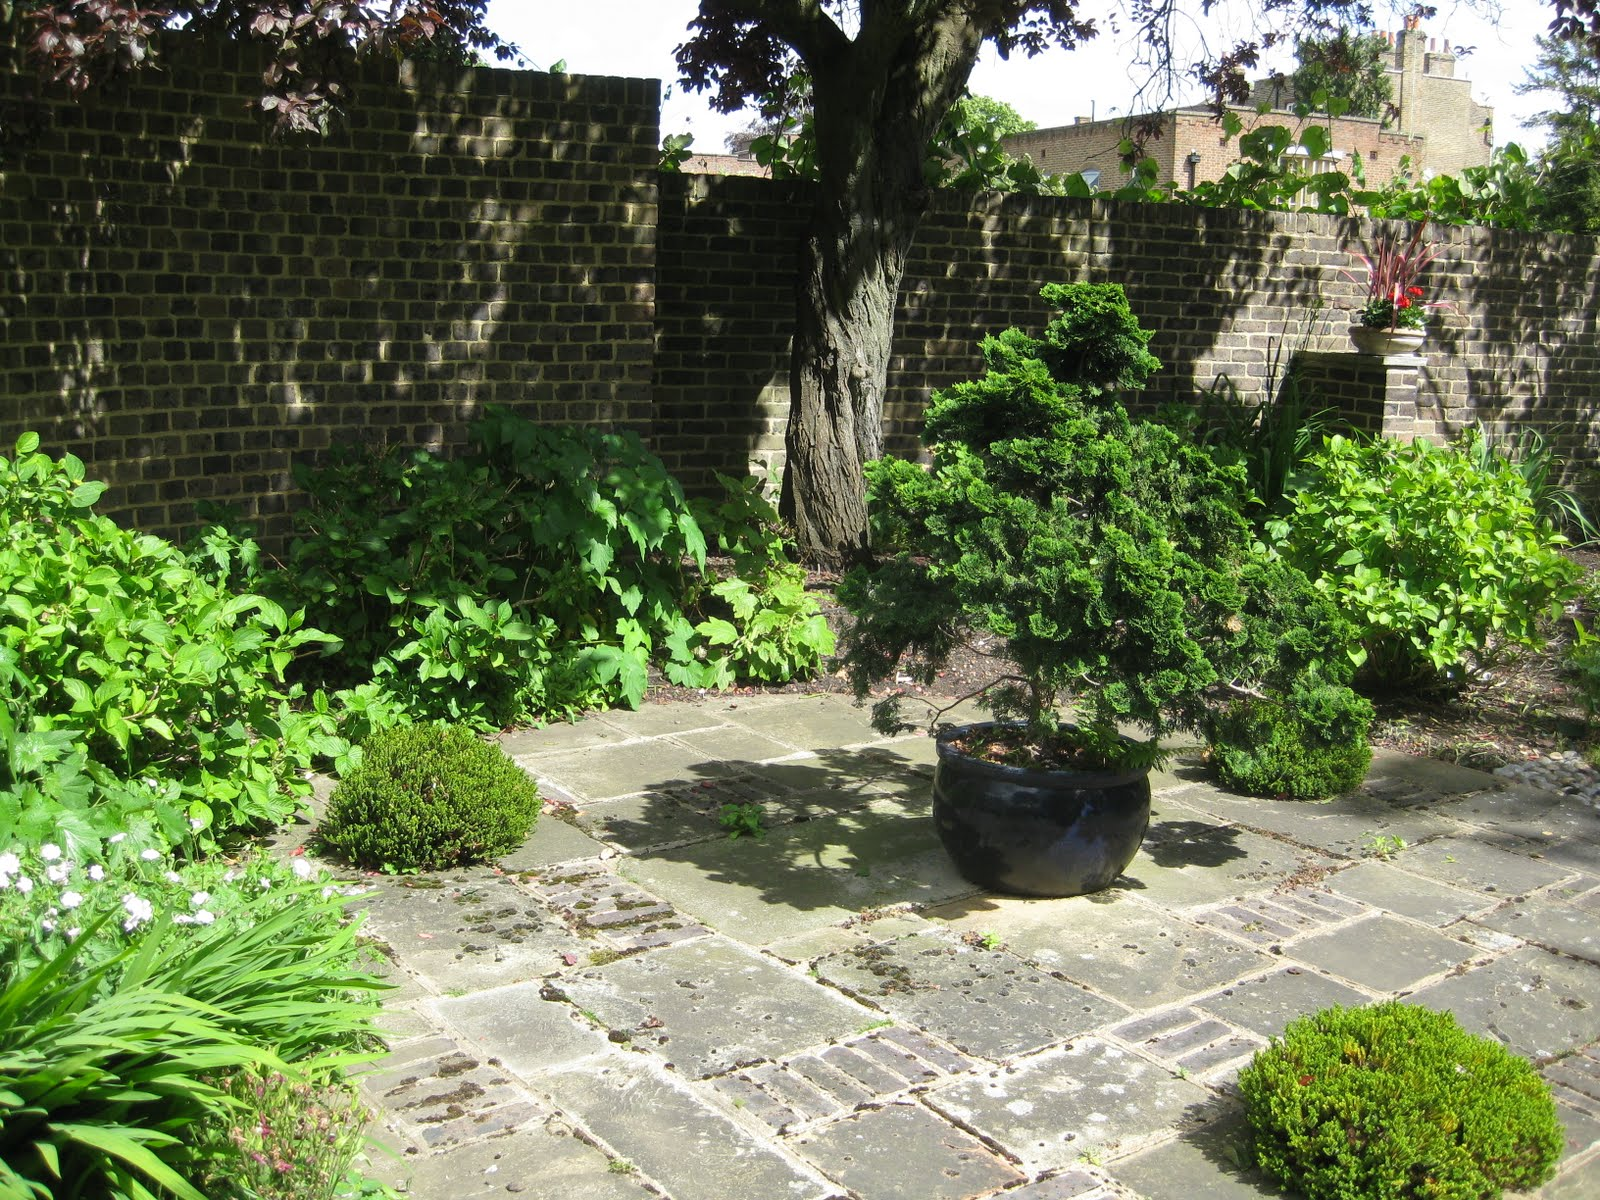 Ham photos rear garden at ormeley lodge -  Few Steps Across The Avenue Takes You To The Other Gate House Which Is Now Little More Than An Ornament In The Garden Of The Much Grander Avenue Lodge